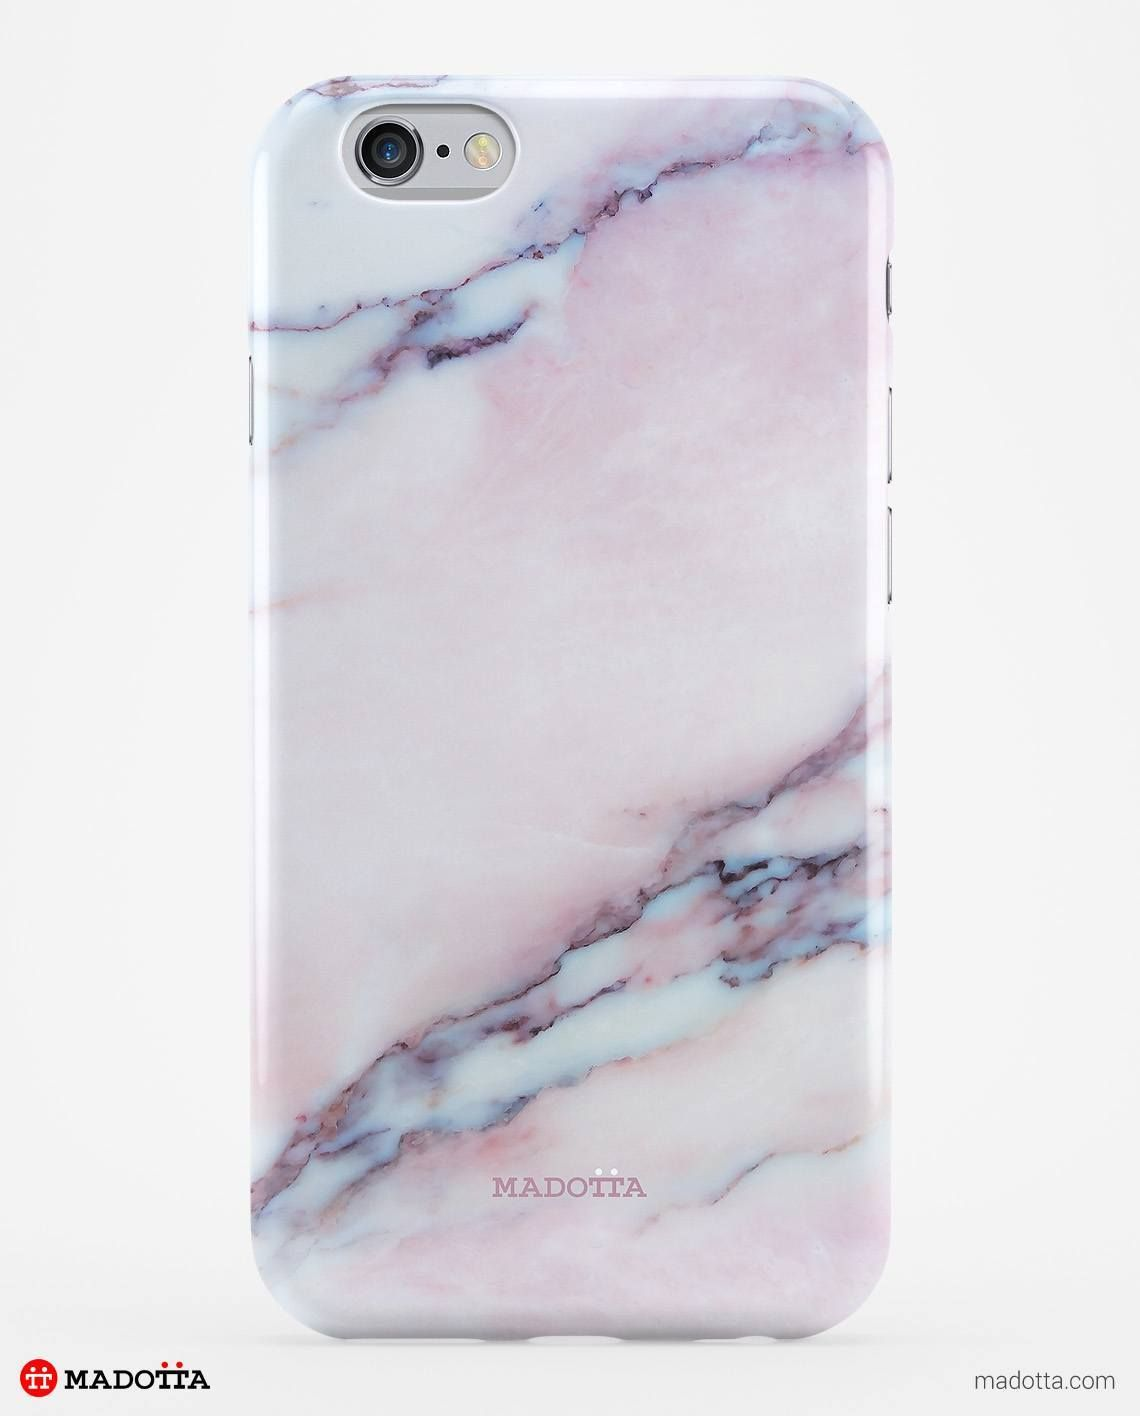 A collection of several stunning Marble iPhone Case Designs, available for iPhones and Samsung Galaxy phones. Made in England. Free shipping worldwide.